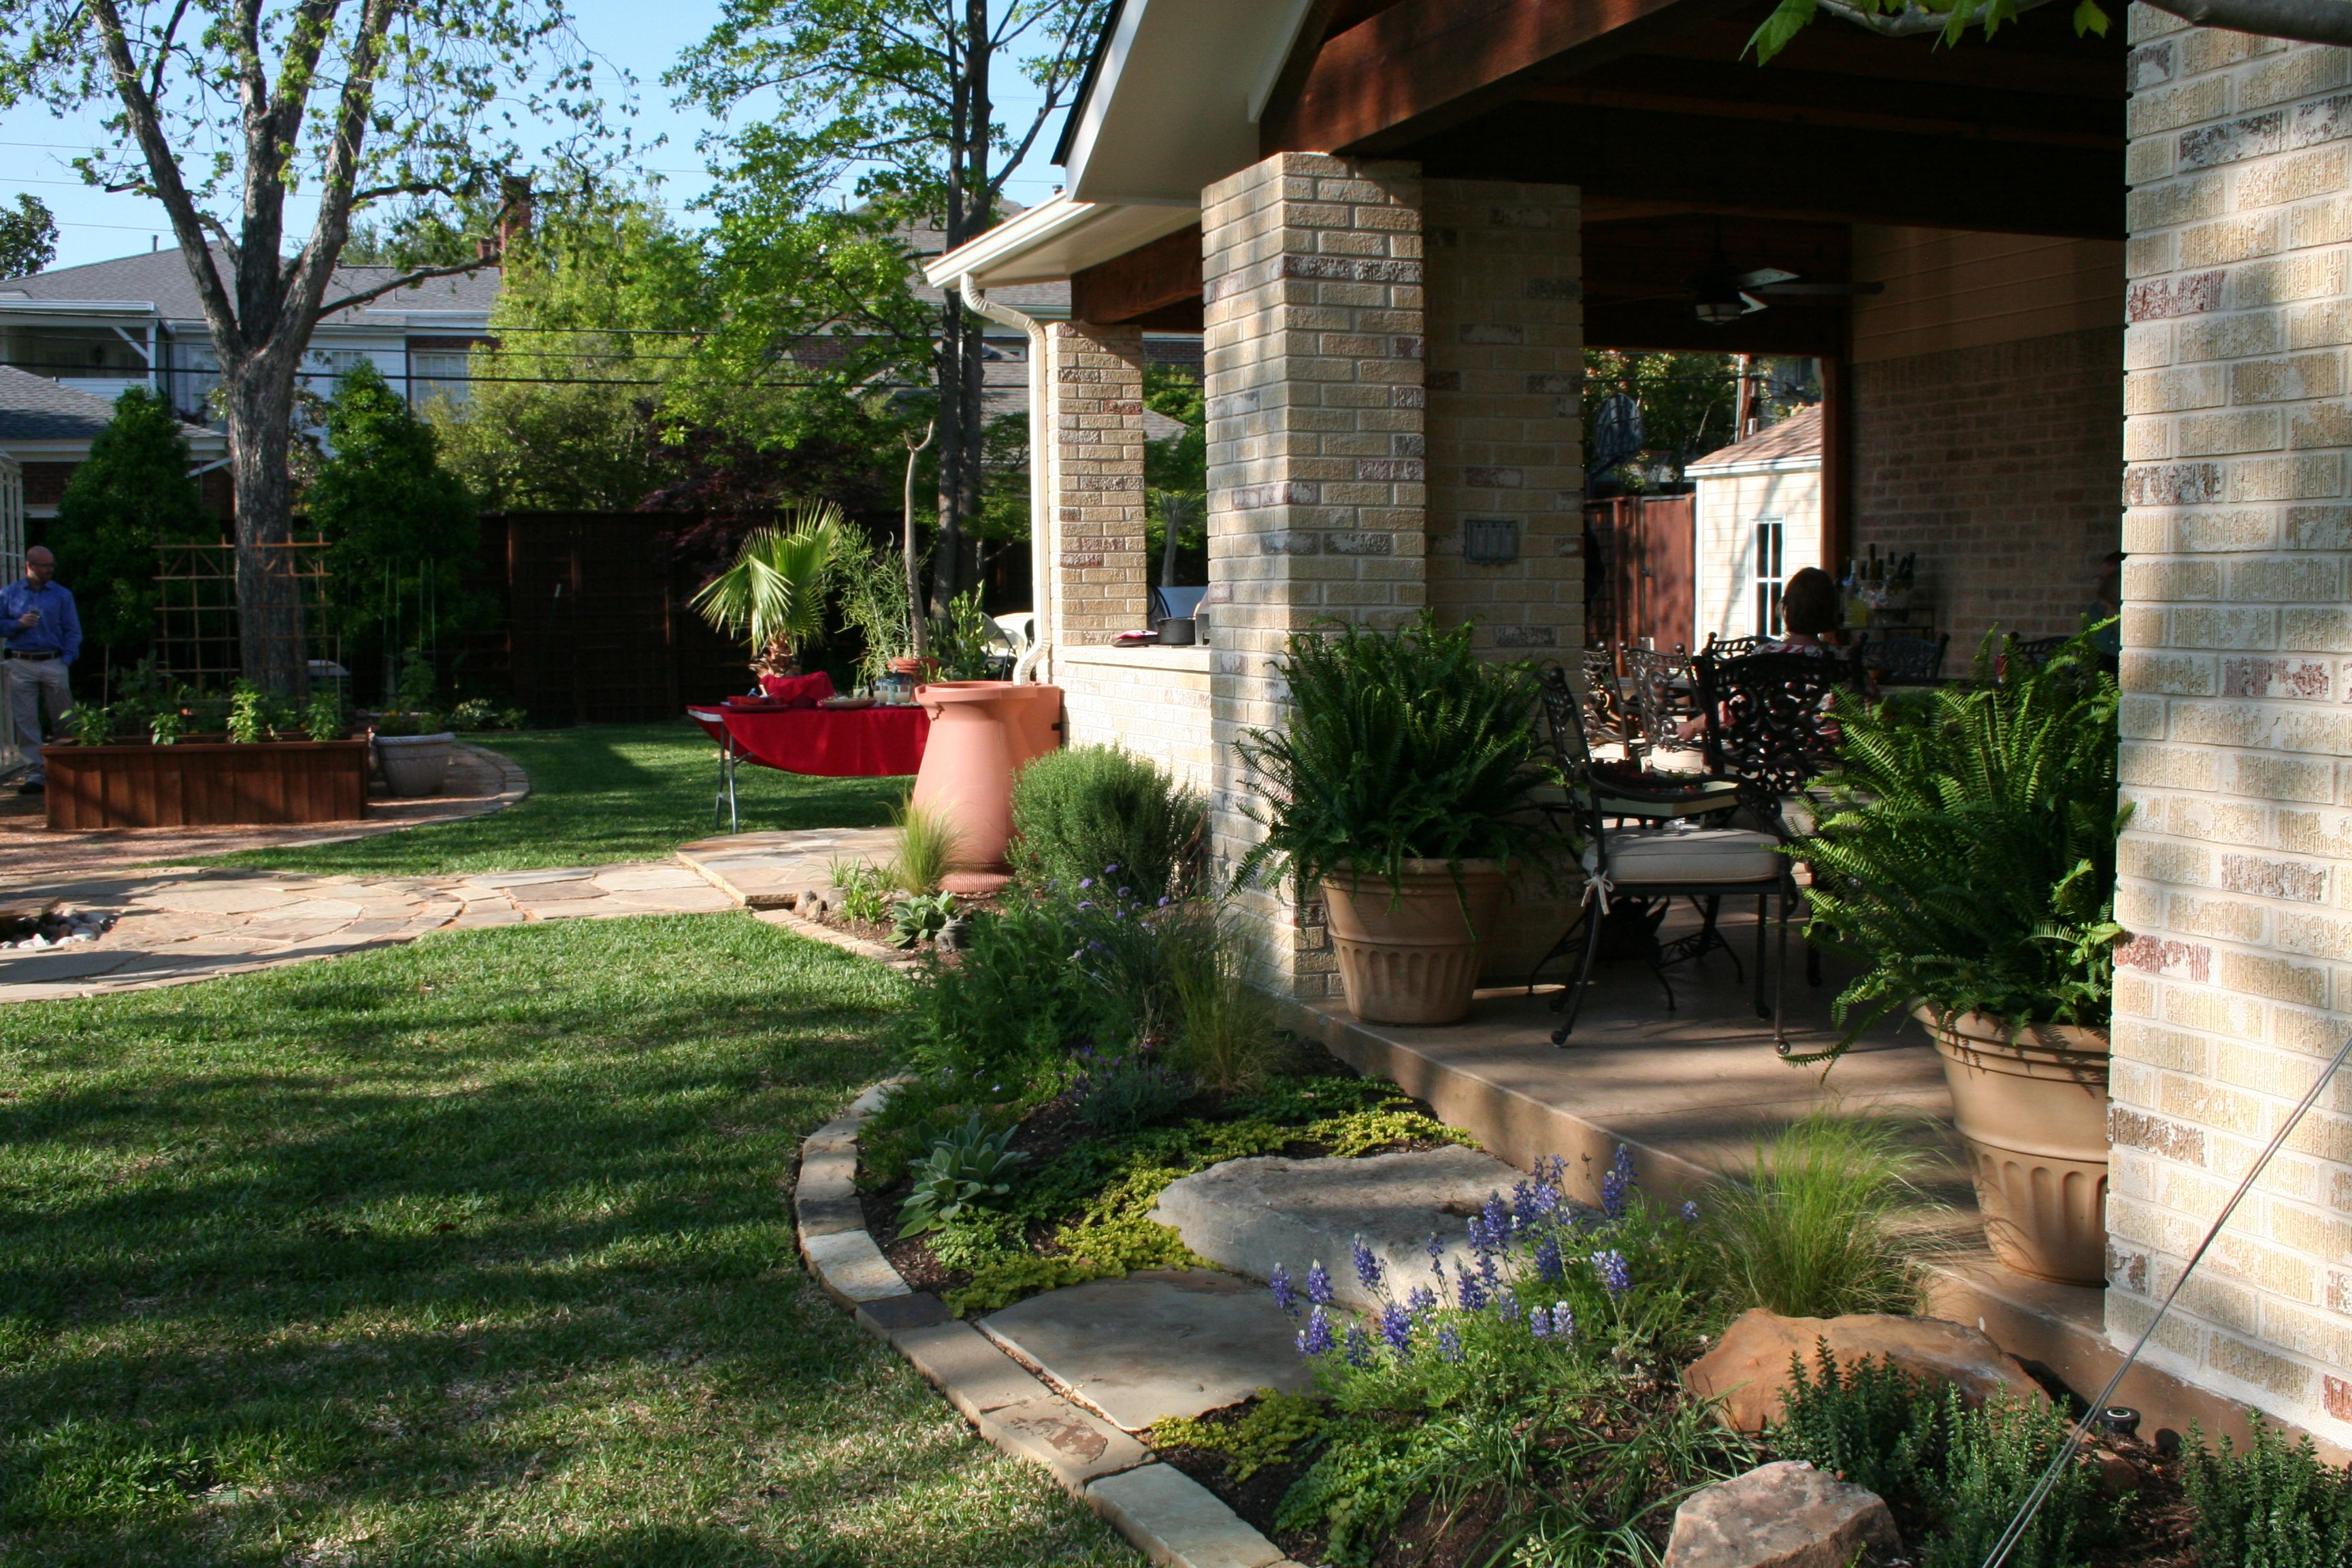 The Perennial Rock Garden Around The Patio Native Texas Plants Are A Great Way To Add Beauty While Saving On Texas Landscaping Rock Garden Texas Native Plants